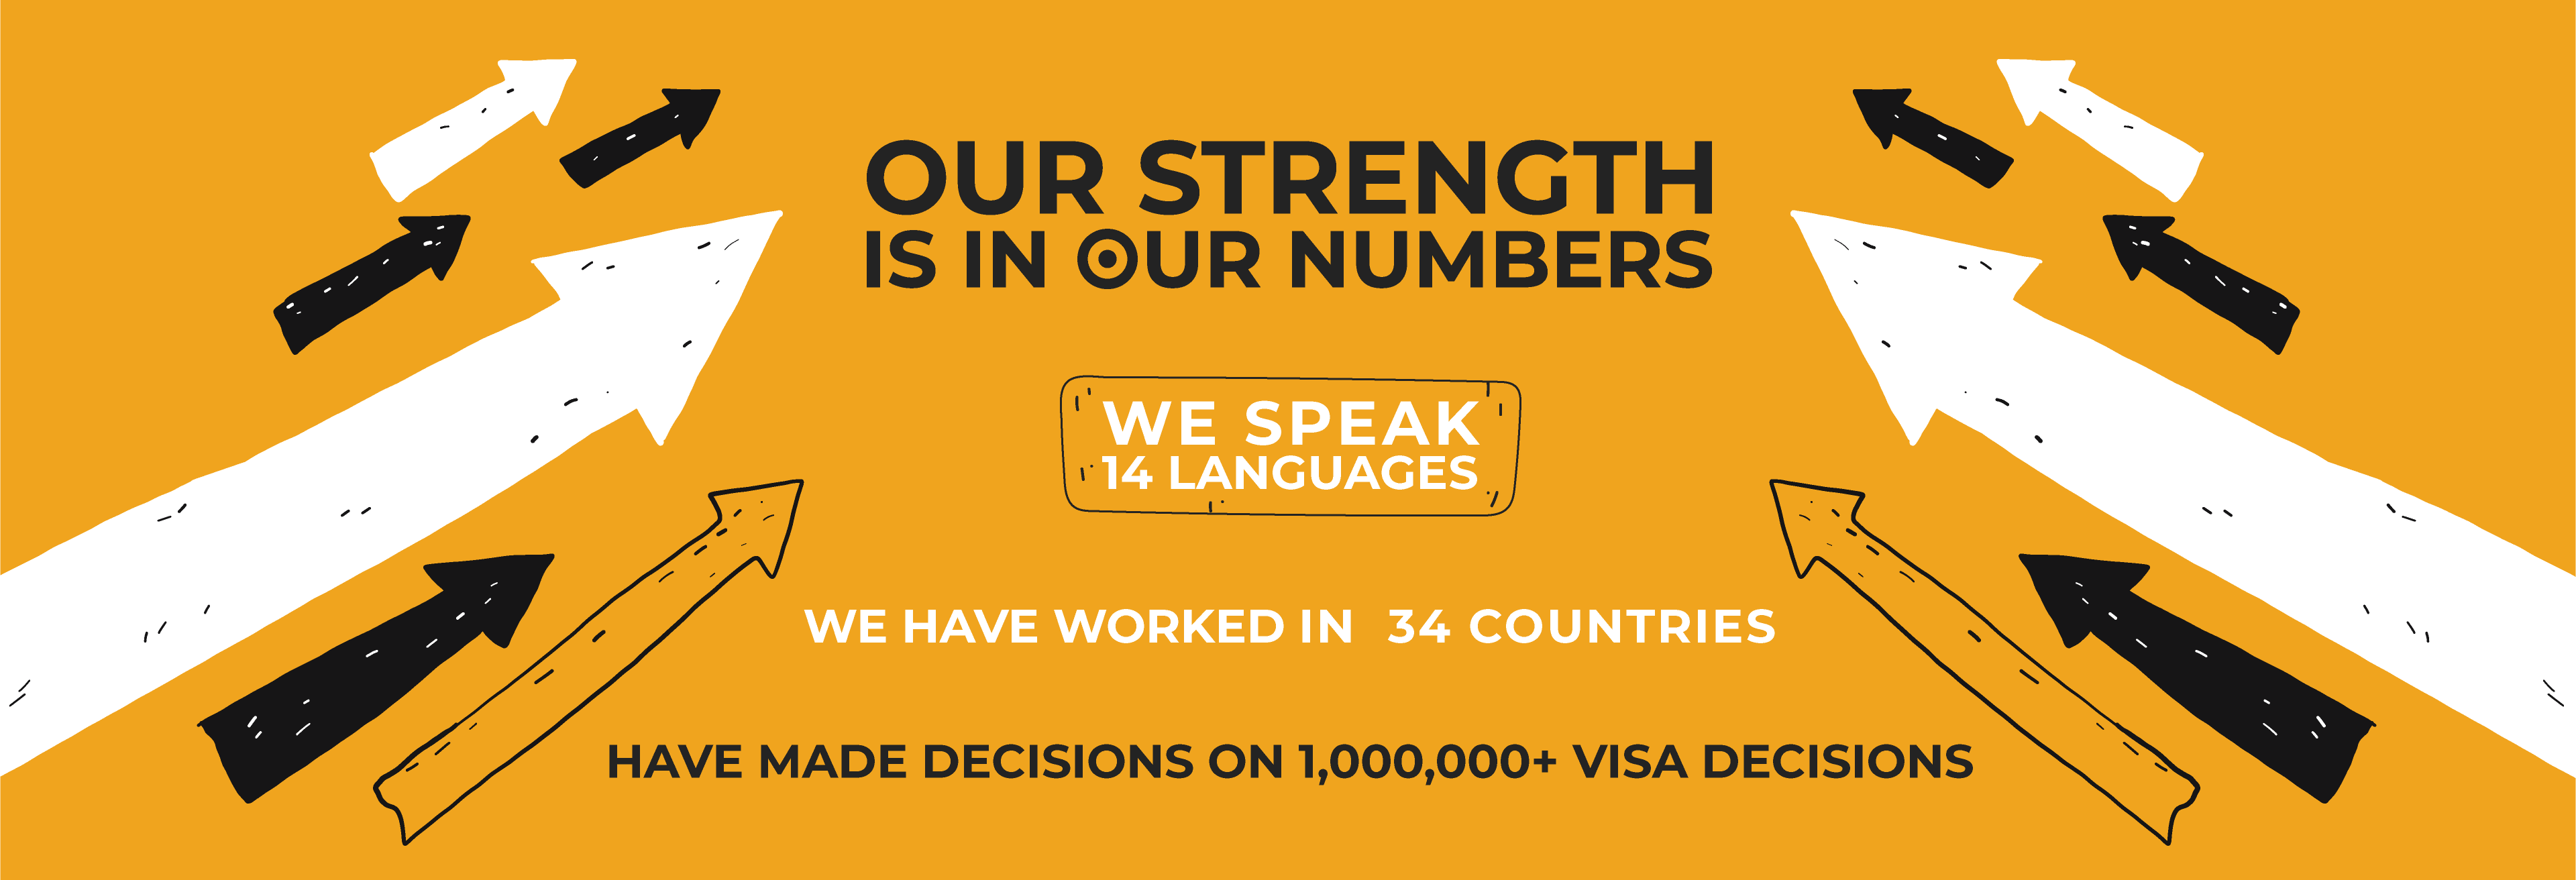 Our strength is in our numbers We speak 14 languages We have worked in 34 countries We have made decisions on 1,000,000+ Visas